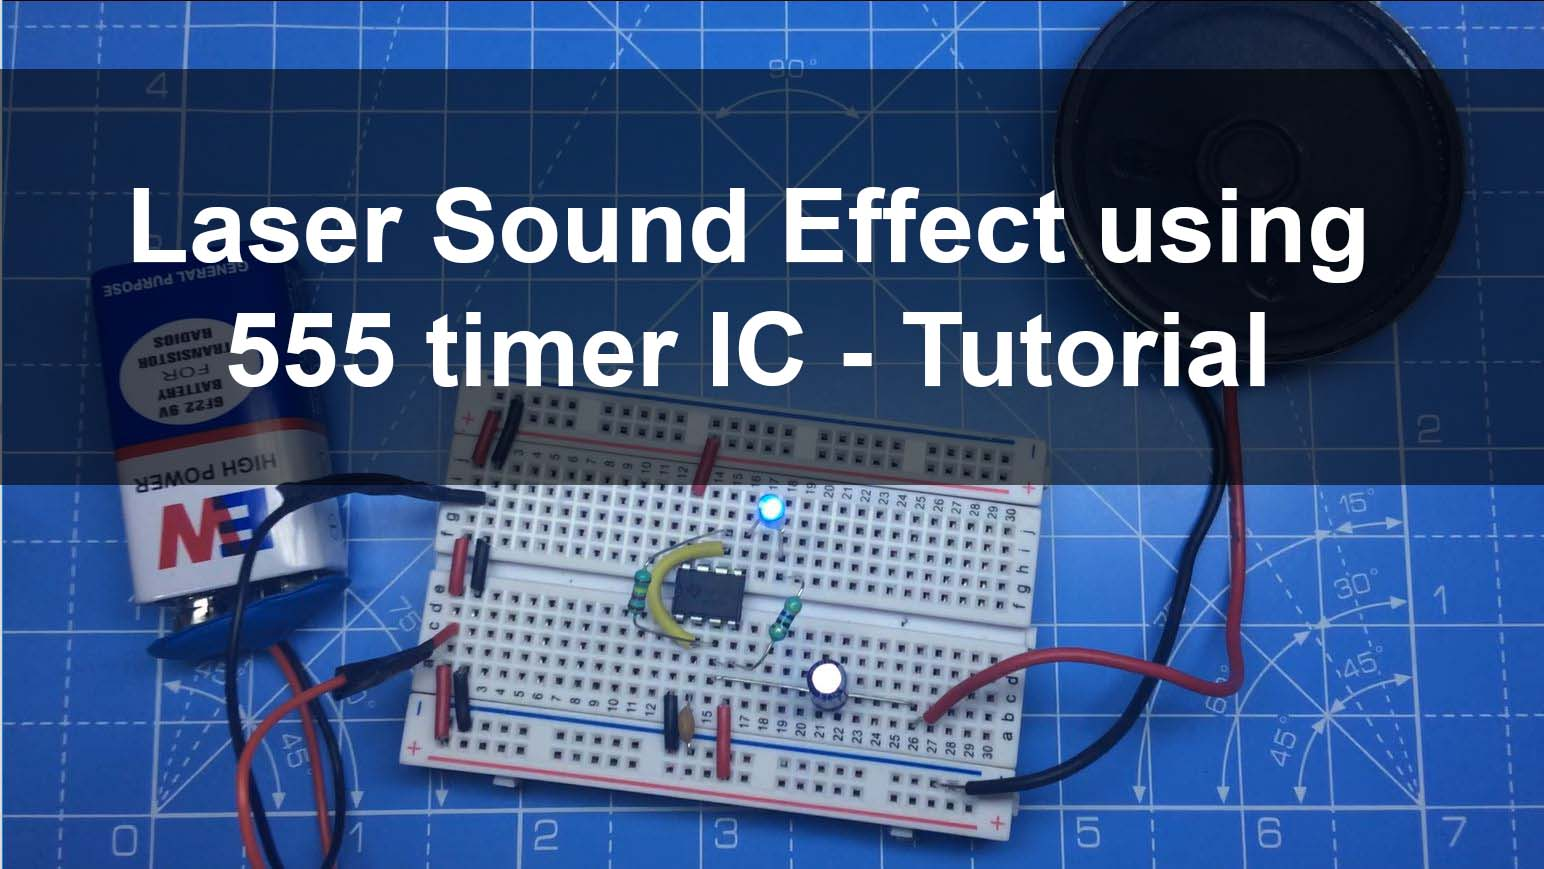 Laser Sound And Led Flash Using 555 Timer Ic Breadboard Tutorial Circuit On Is